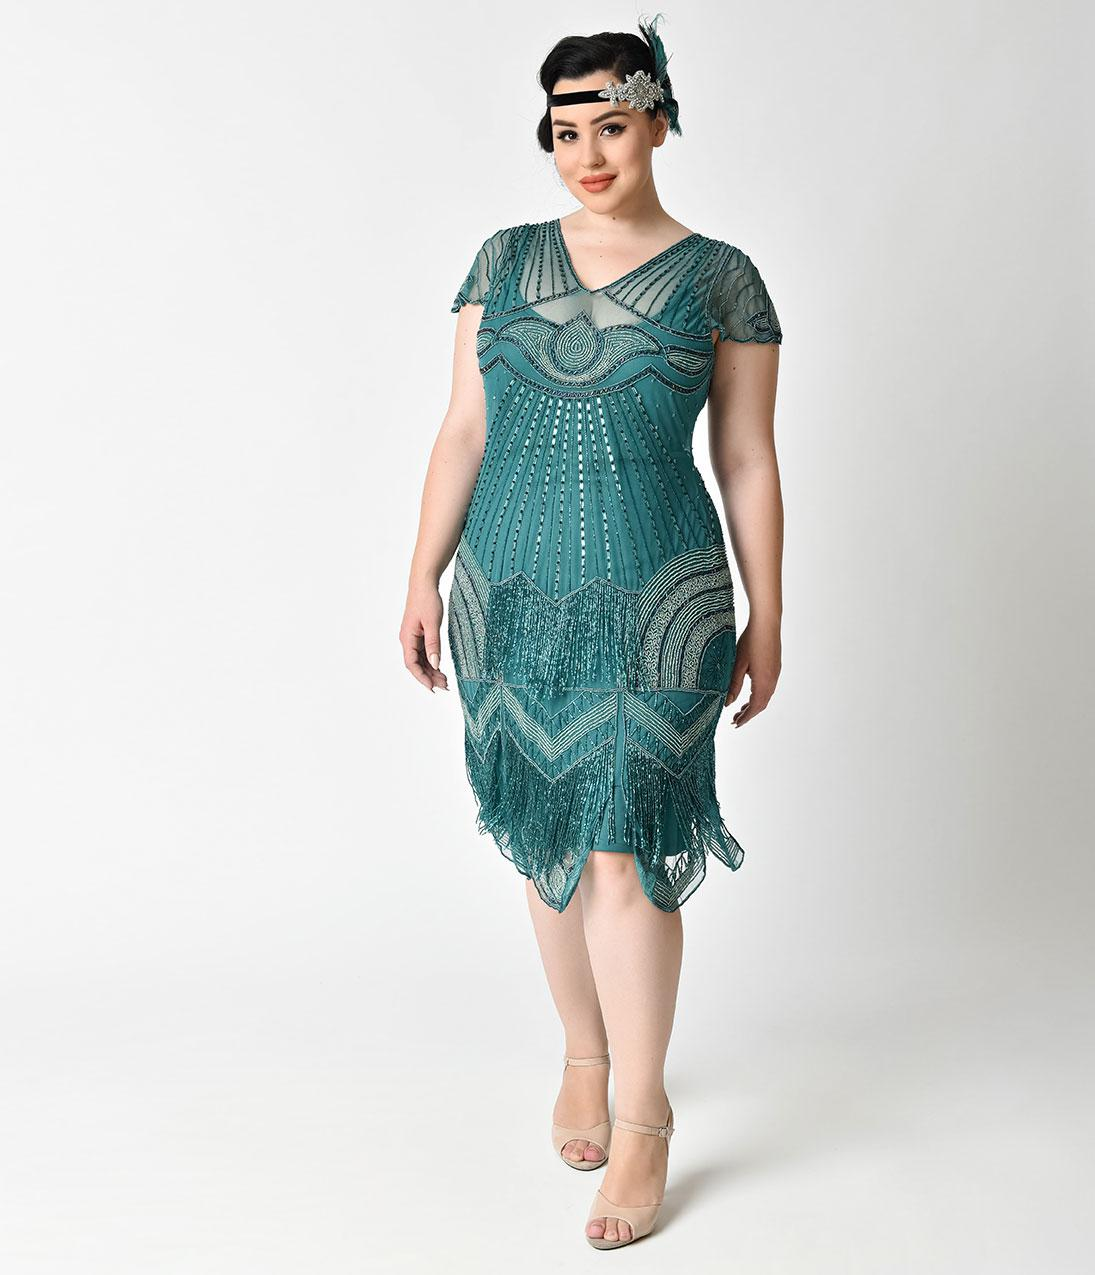 1920s Dress Plus Size: Something that will make your heart beat faster